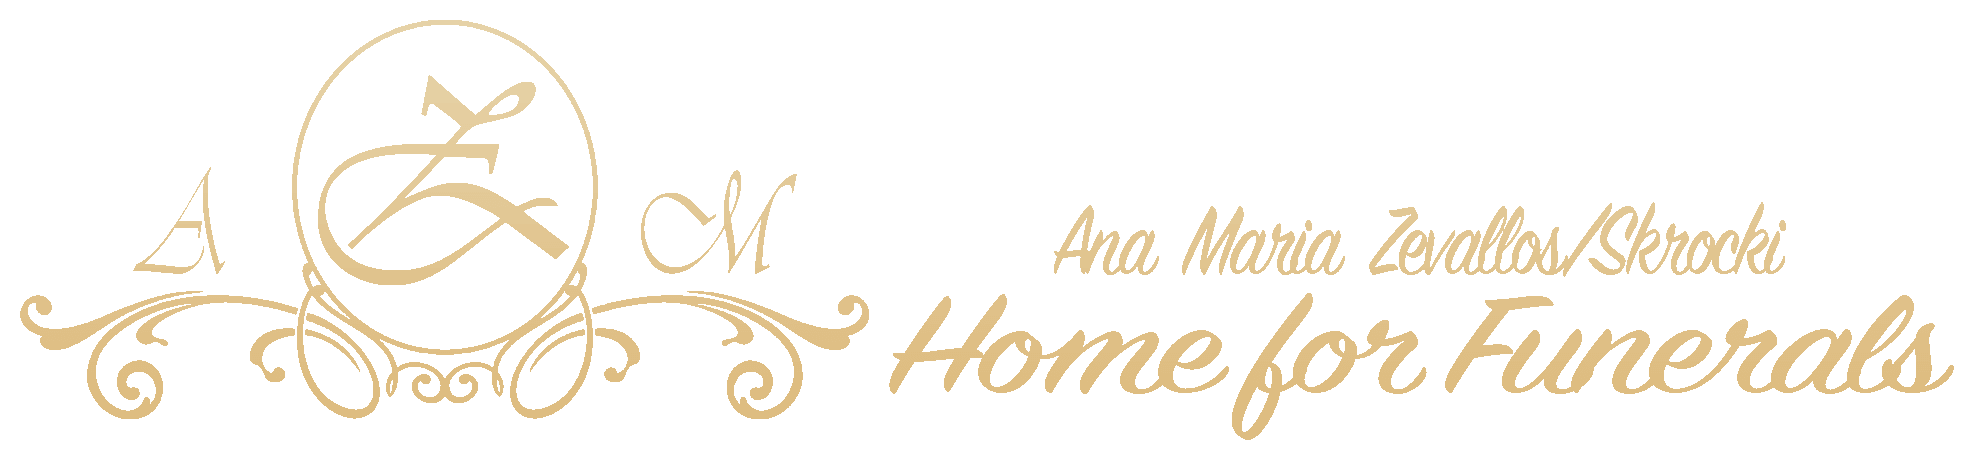 Ana maria zevallosskrocki home for funerals perth amboy nj site image reheart Image collections